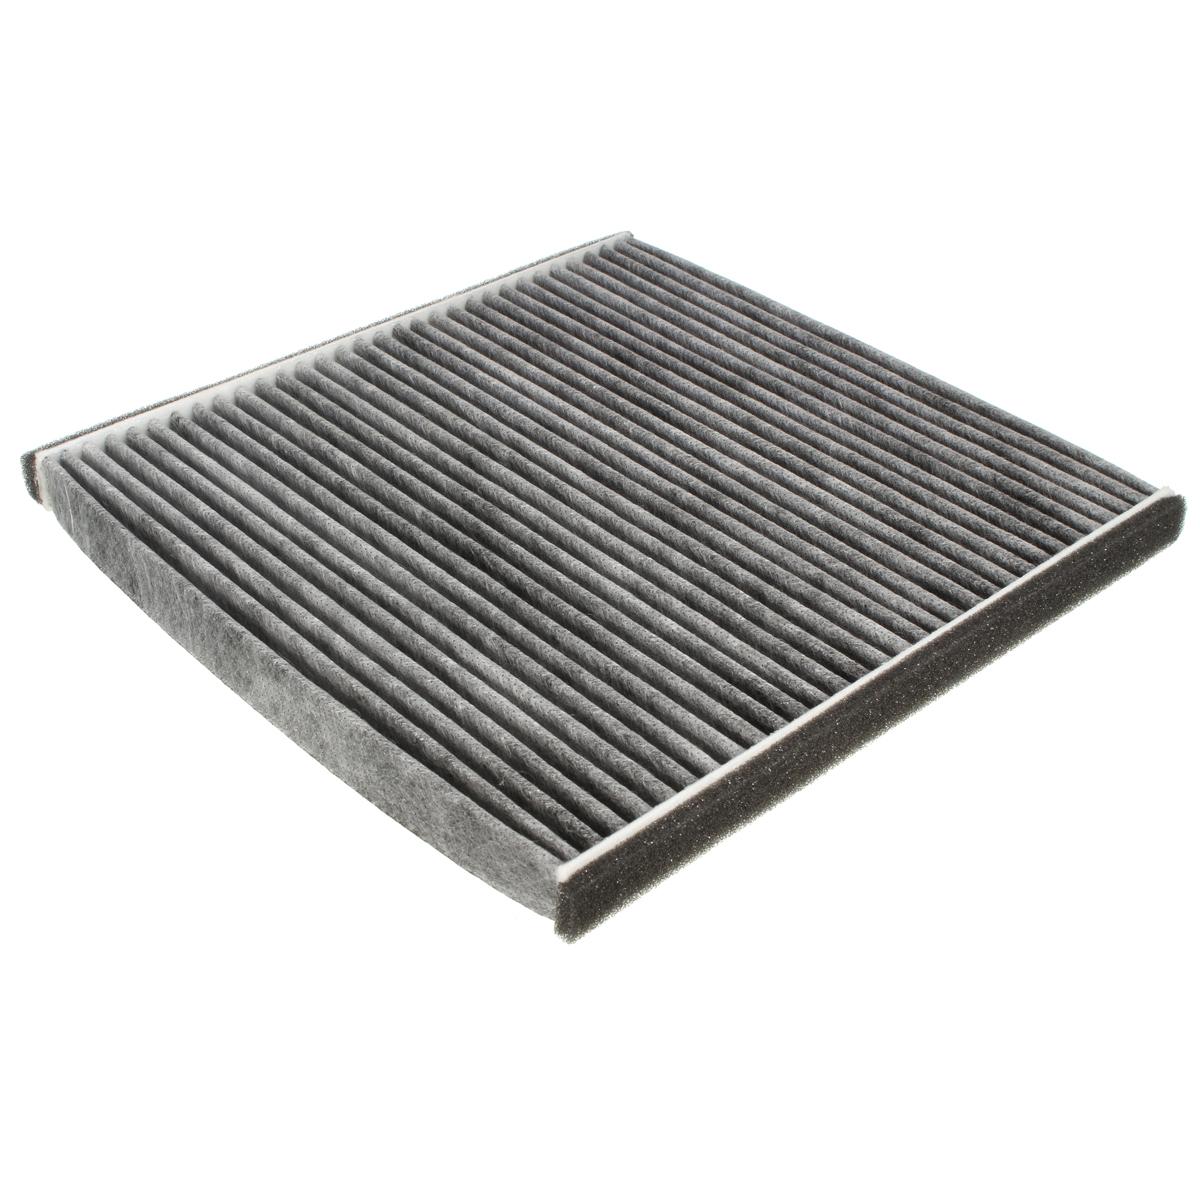 cabin air filter for toyota camry 2002 2006 solara 2002 2008 sienna 2004 2010 ebay. Black Bedroom Furniture Sets. Home Design Ideas